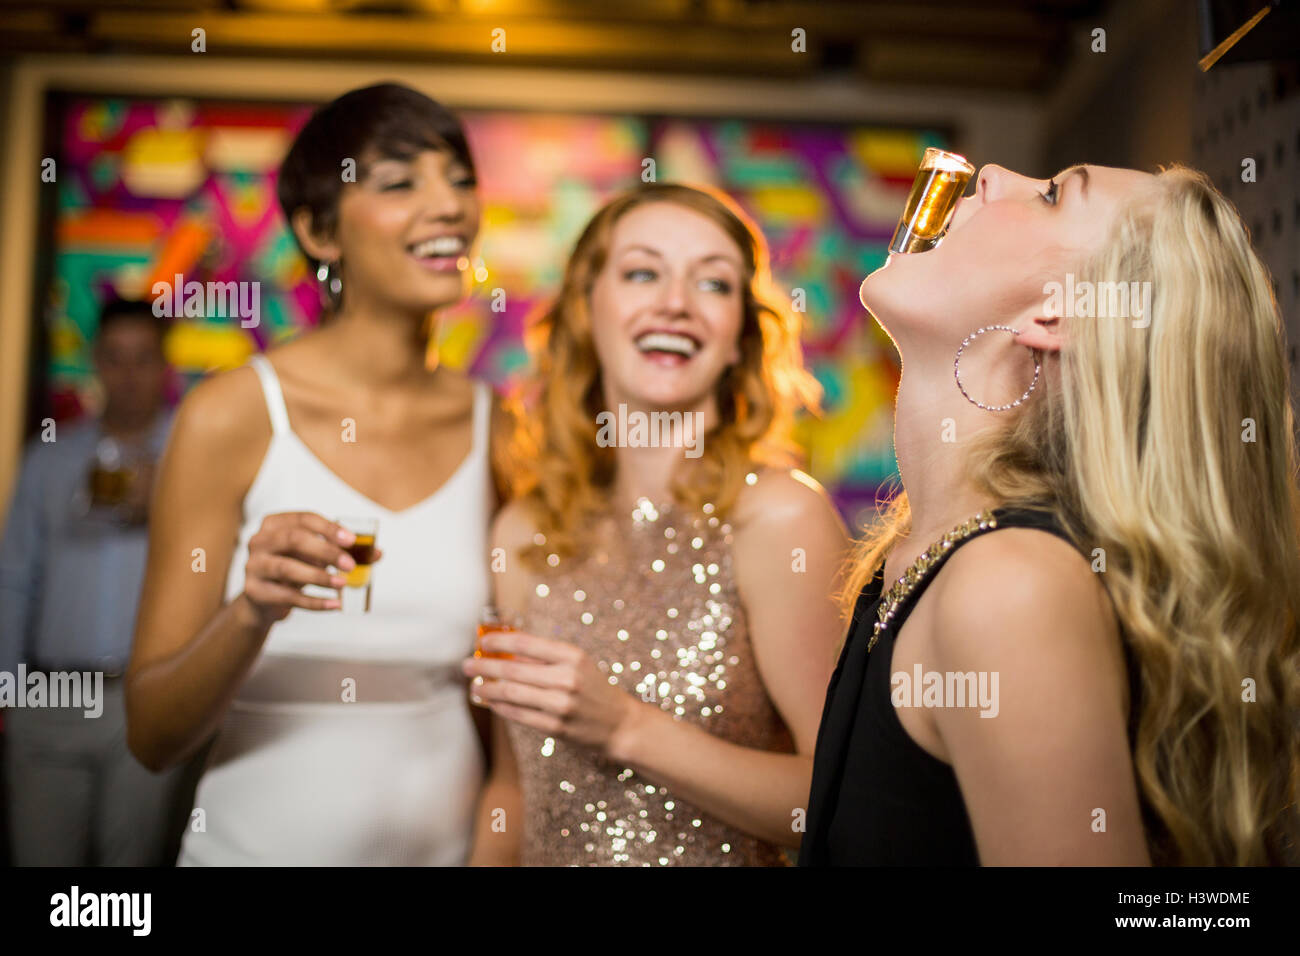 Woman balancing a shot glass on her mouth - Stock Image